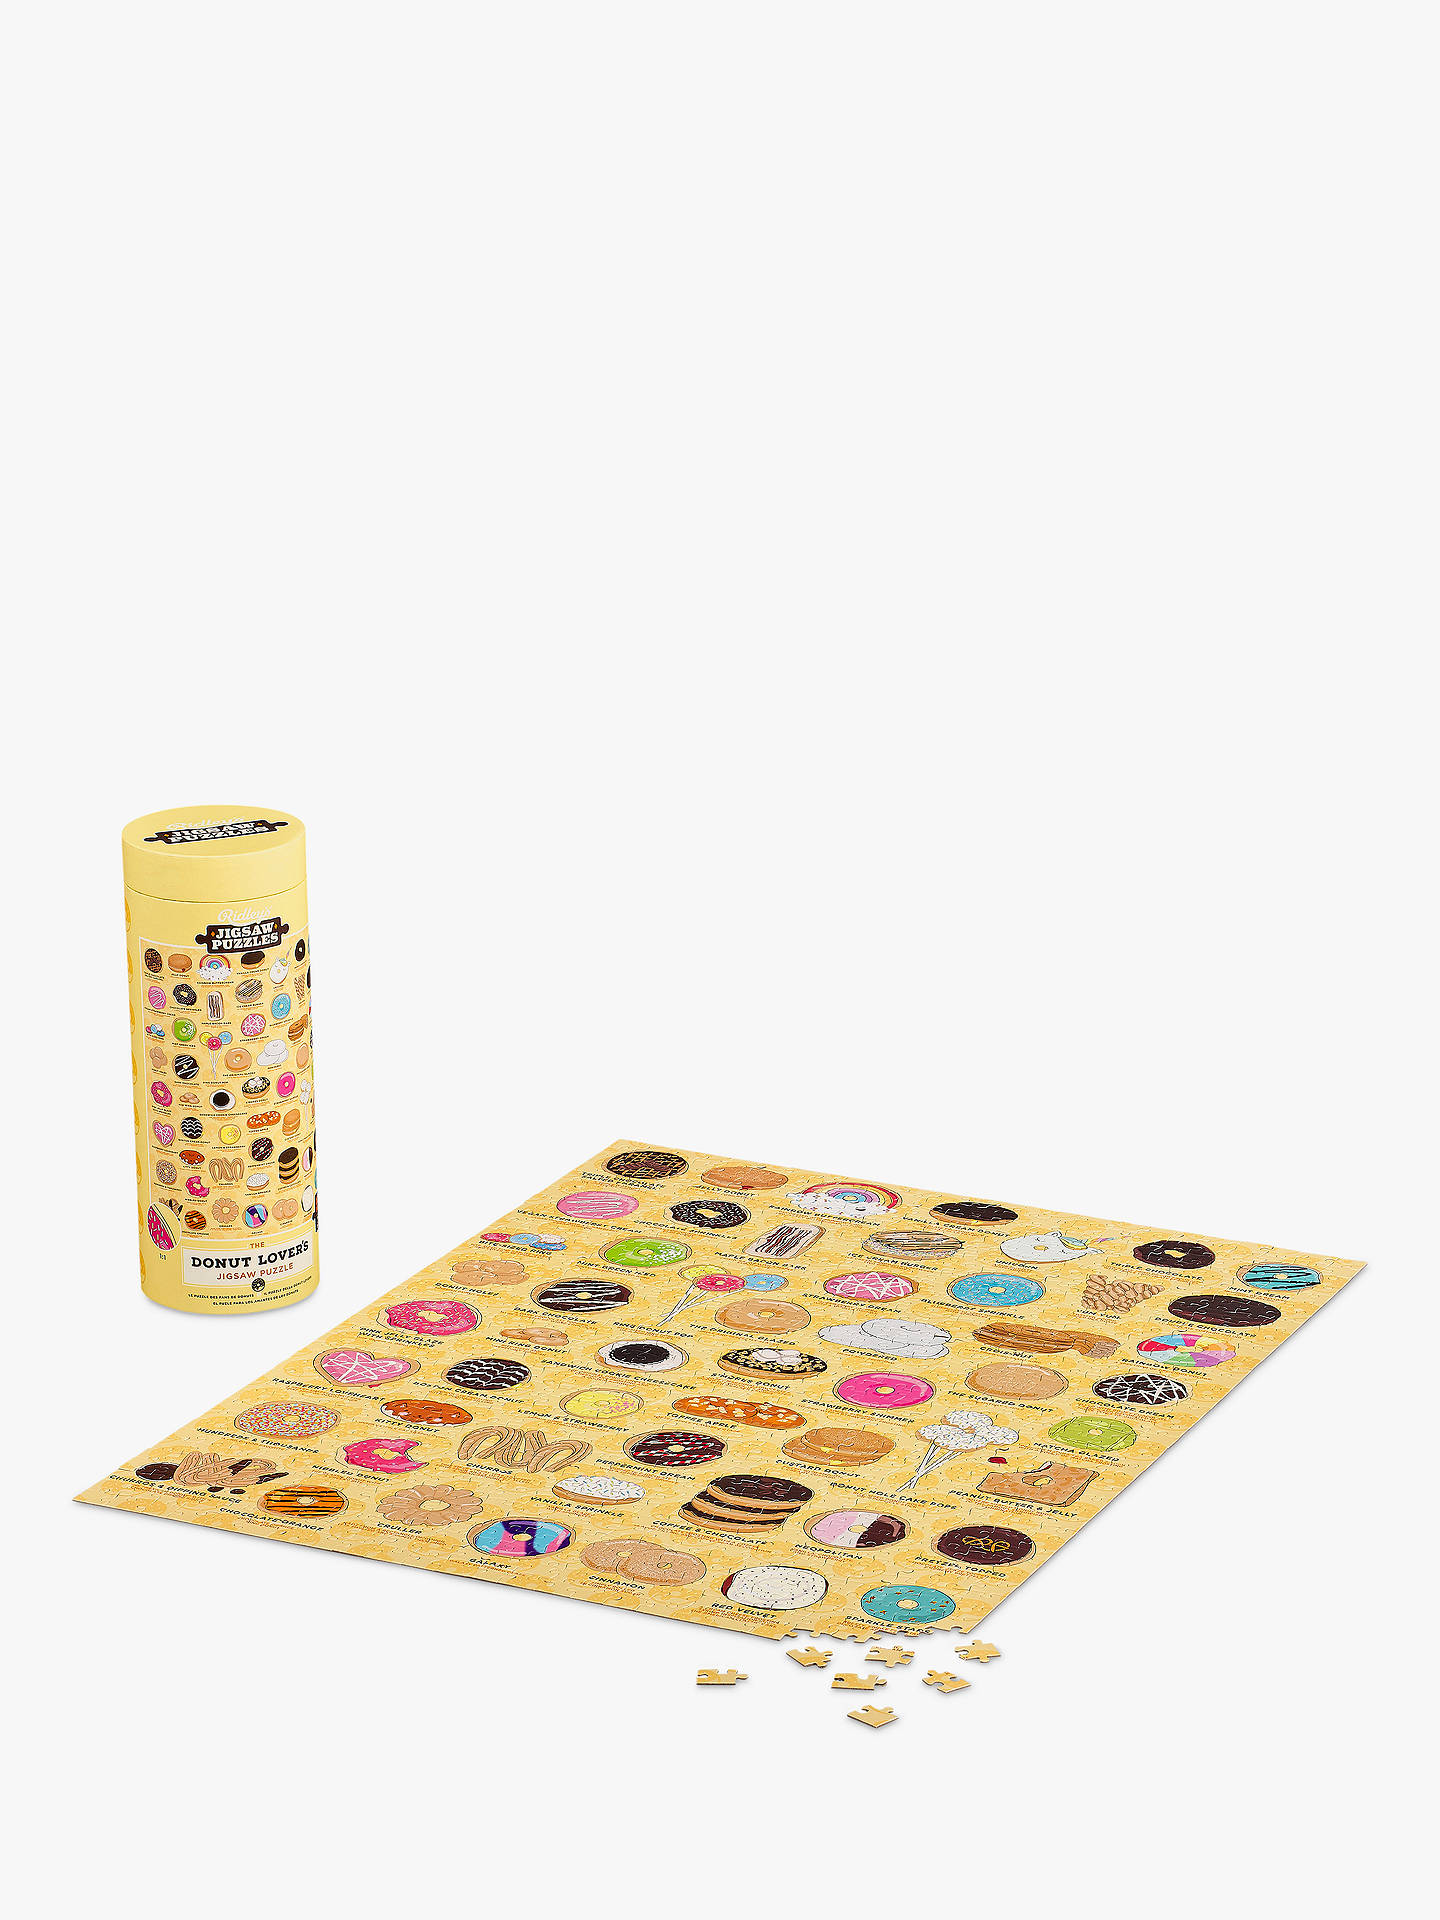 Clever Gifts for Jigsaw Puzzle Lovers